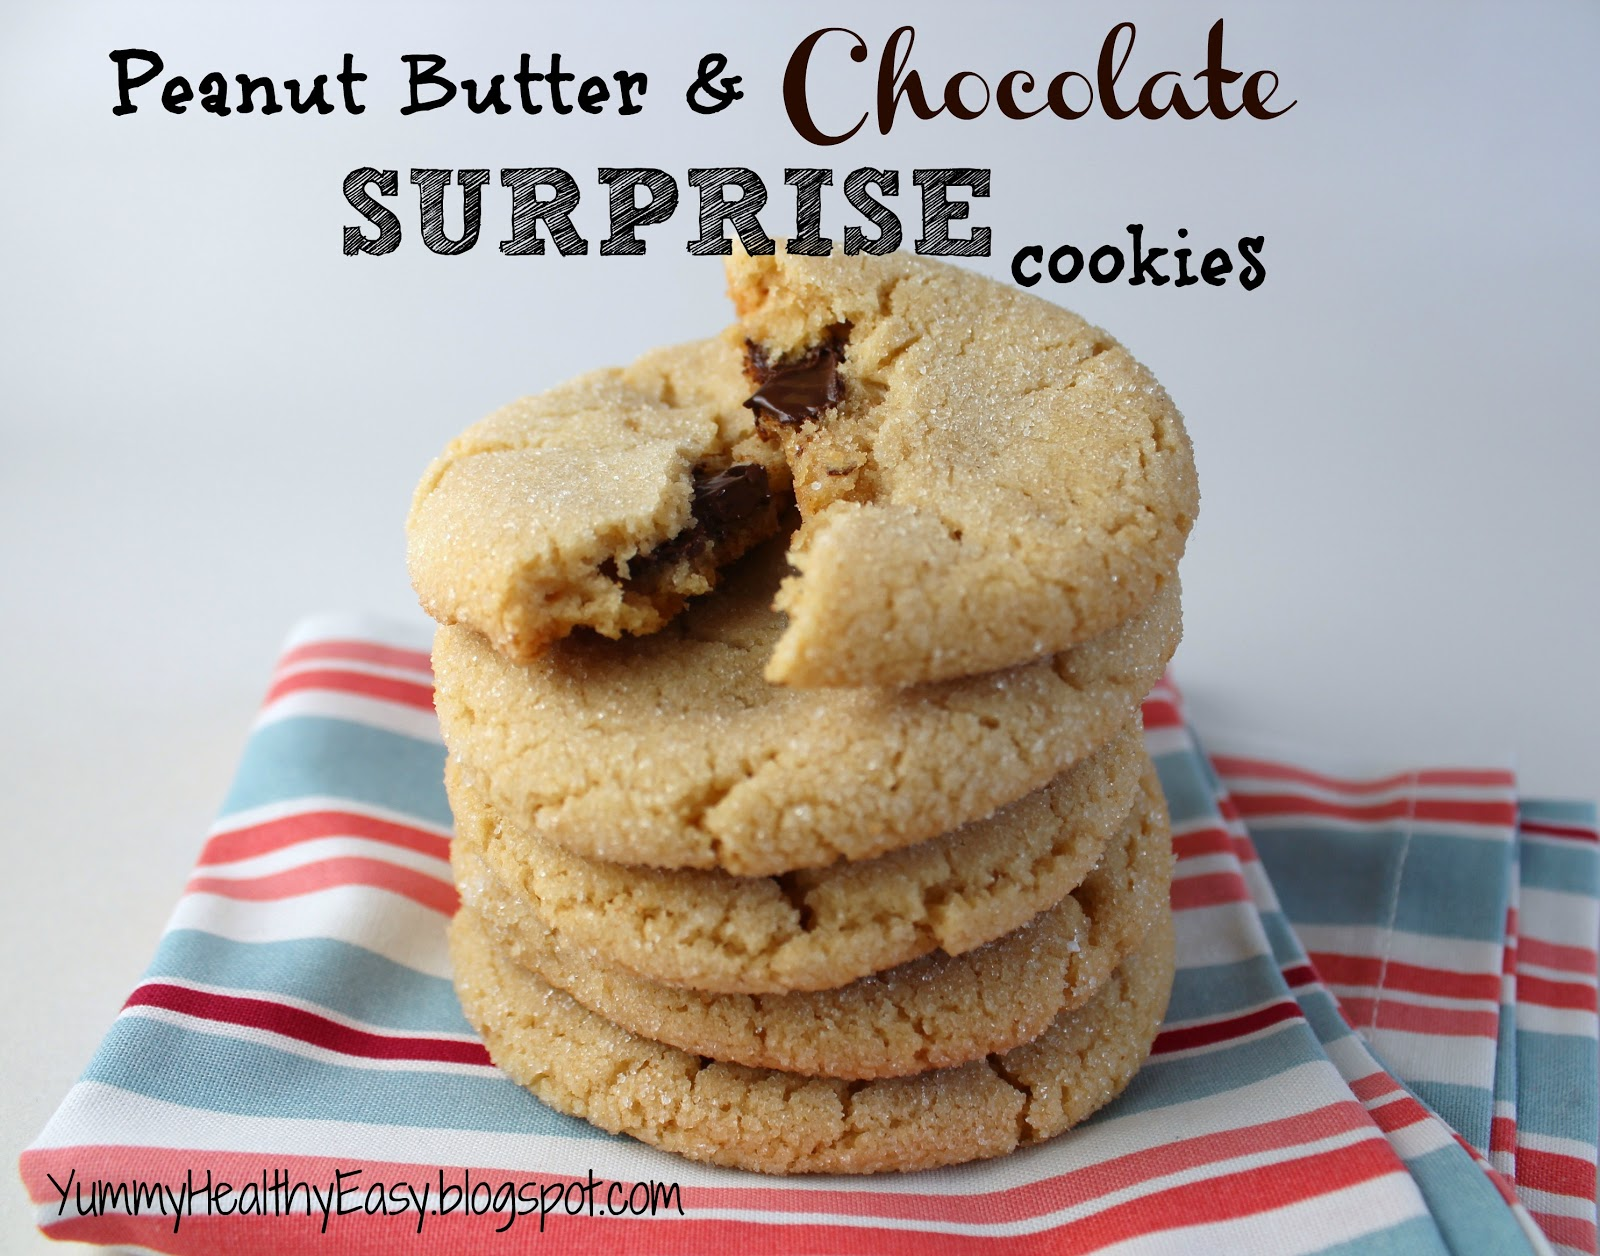 Chewy Peanut Butter & Chocolate Surprise Cookies